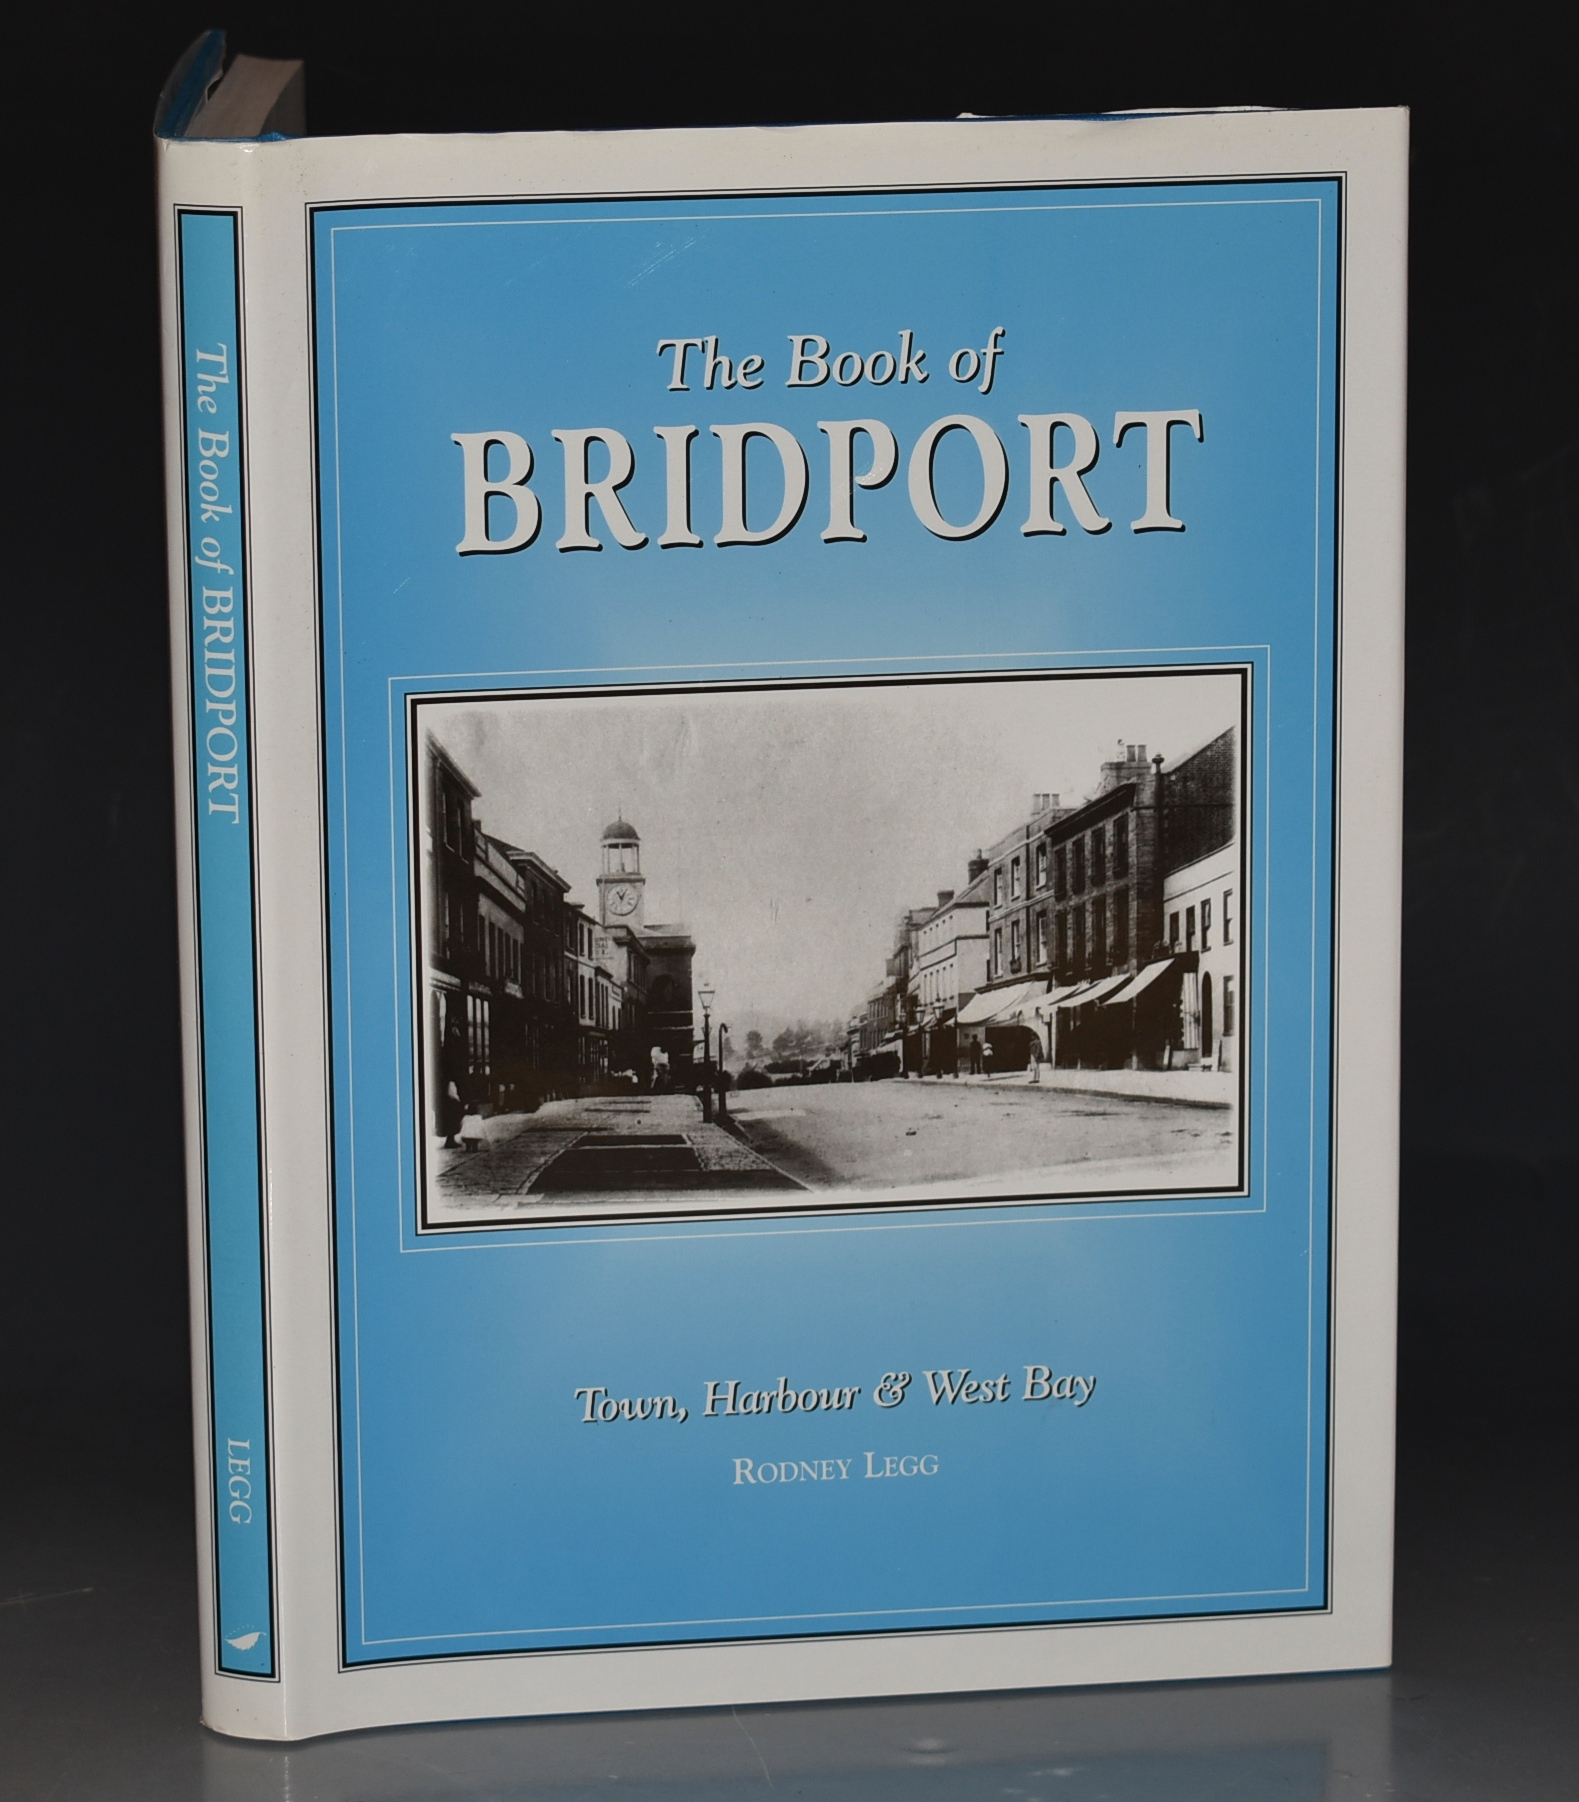 Image for The Book of Bridport Town, Harbour & West Bay